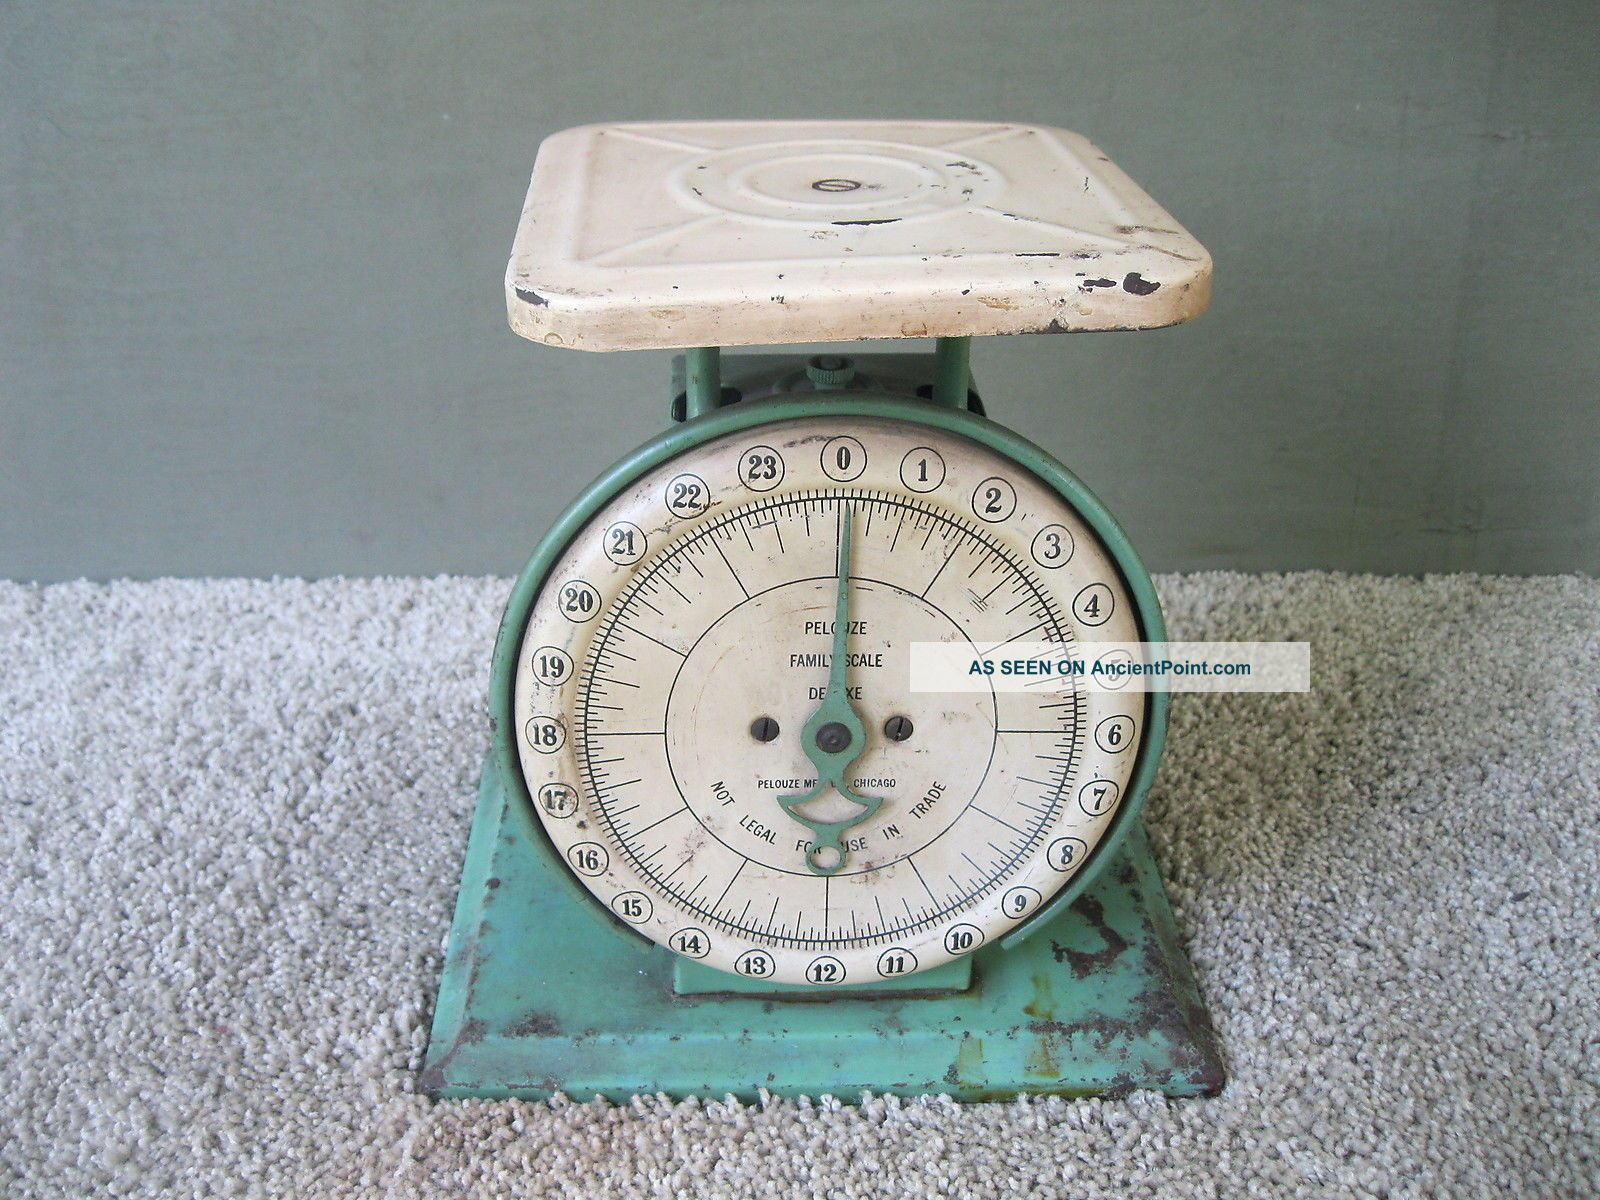 Antique Scale Pelouze Kitchen Family Old Green Paint 24 Lbs Chicago Il Scales photo